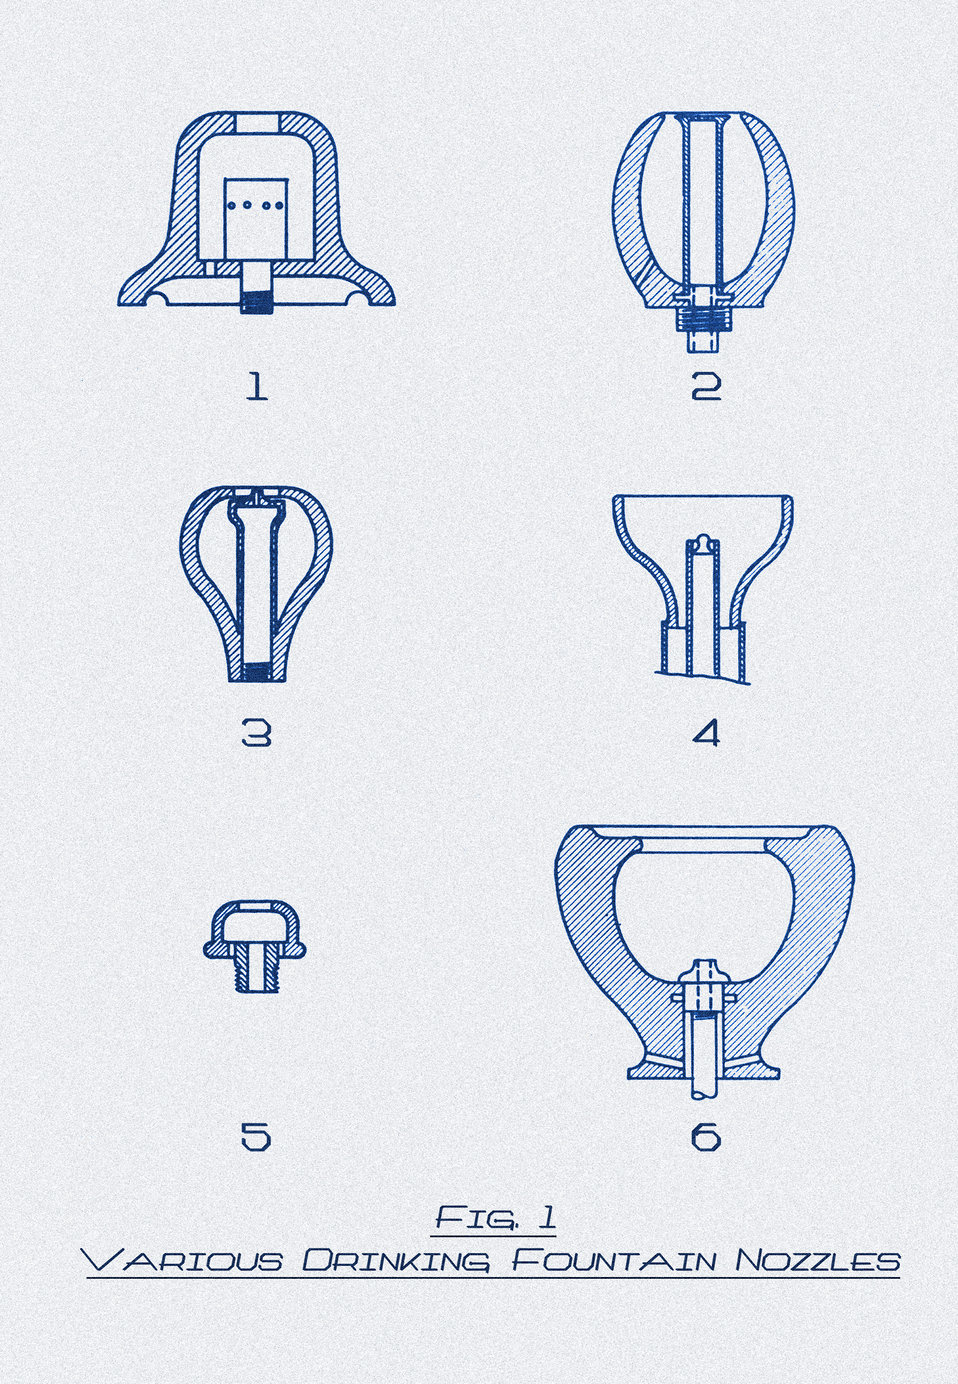 Created in 1917, this historic drawing depicted six different types of unsatisfactorily designed drinking fountain nozzles. The Minnesota De